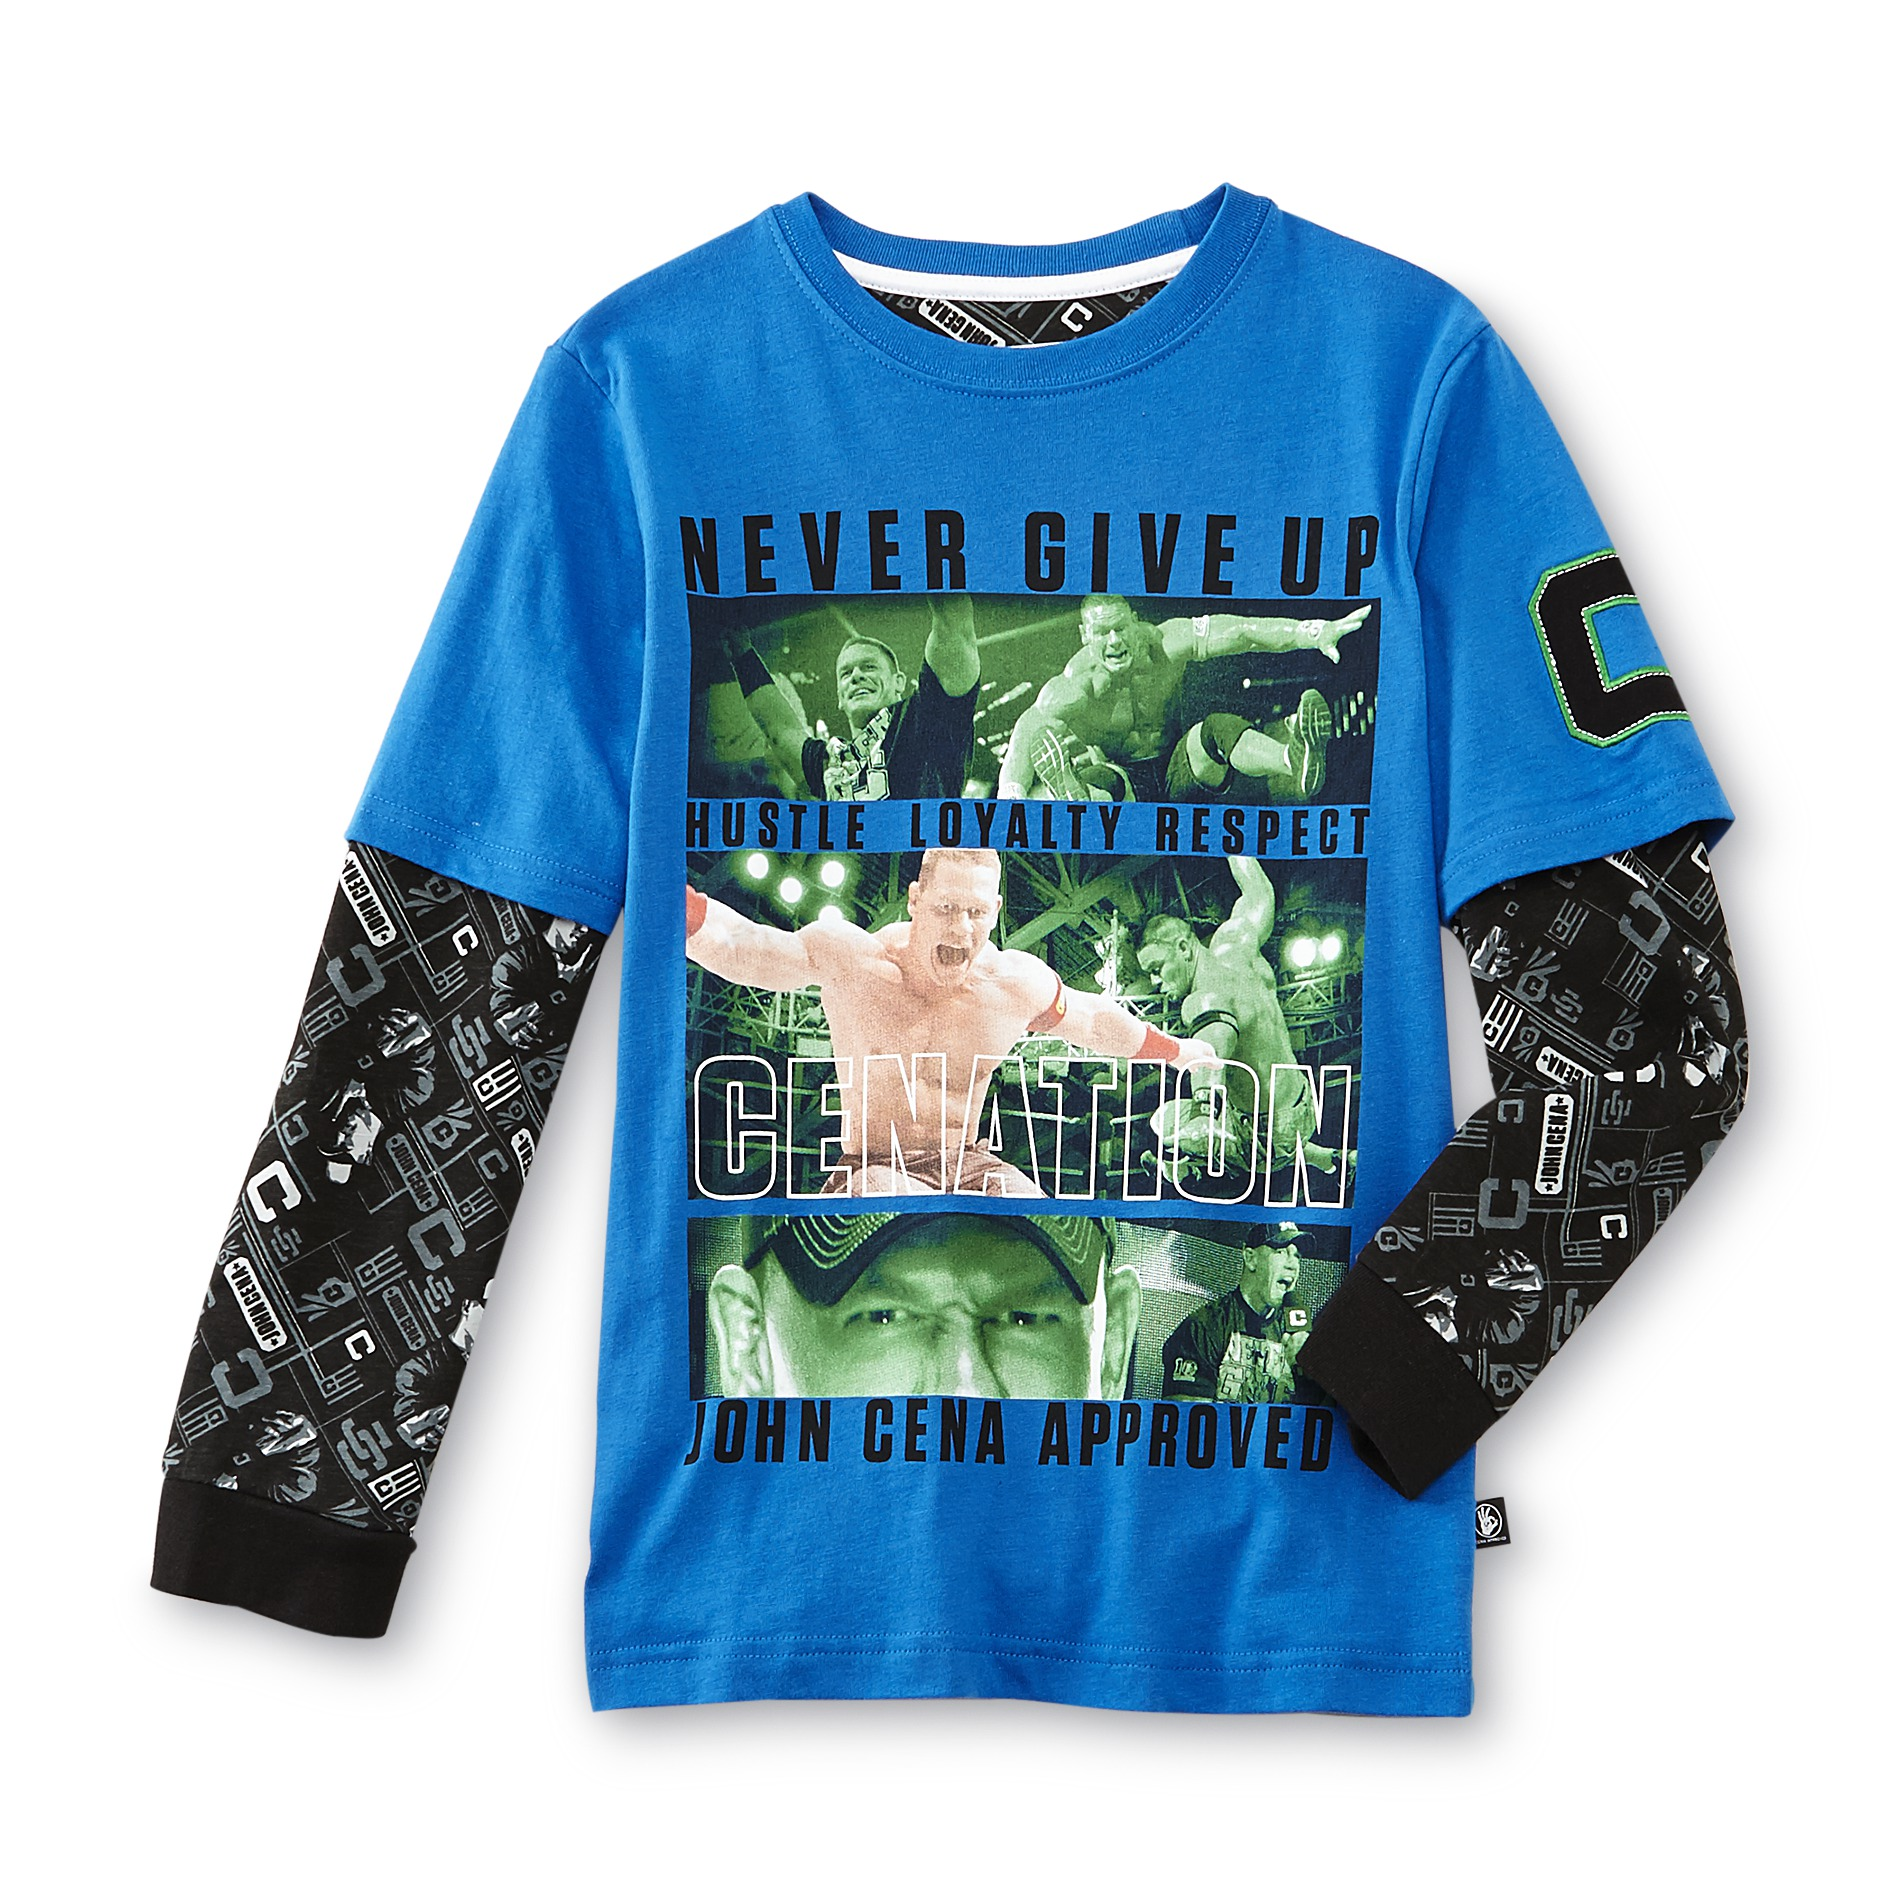 Never Give Up By John Cena Boy's Long-Sleeve Graphic T-Shirt PartNumber: 049VA84946412P MfgPartNumber: WCSB137